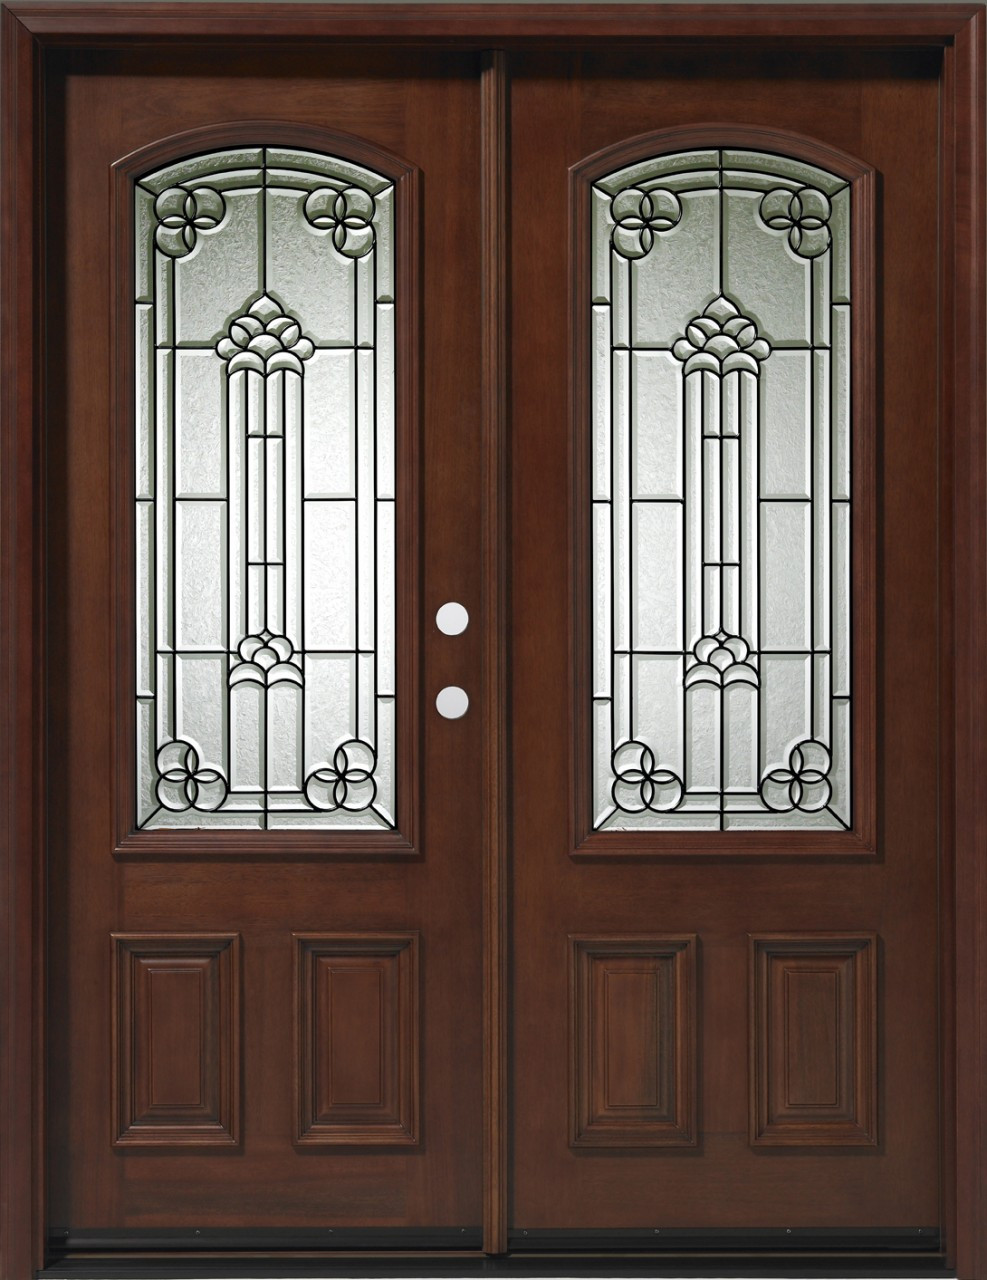 Discount door center prehung and prefinished 3 4 lite for Exterior double doors